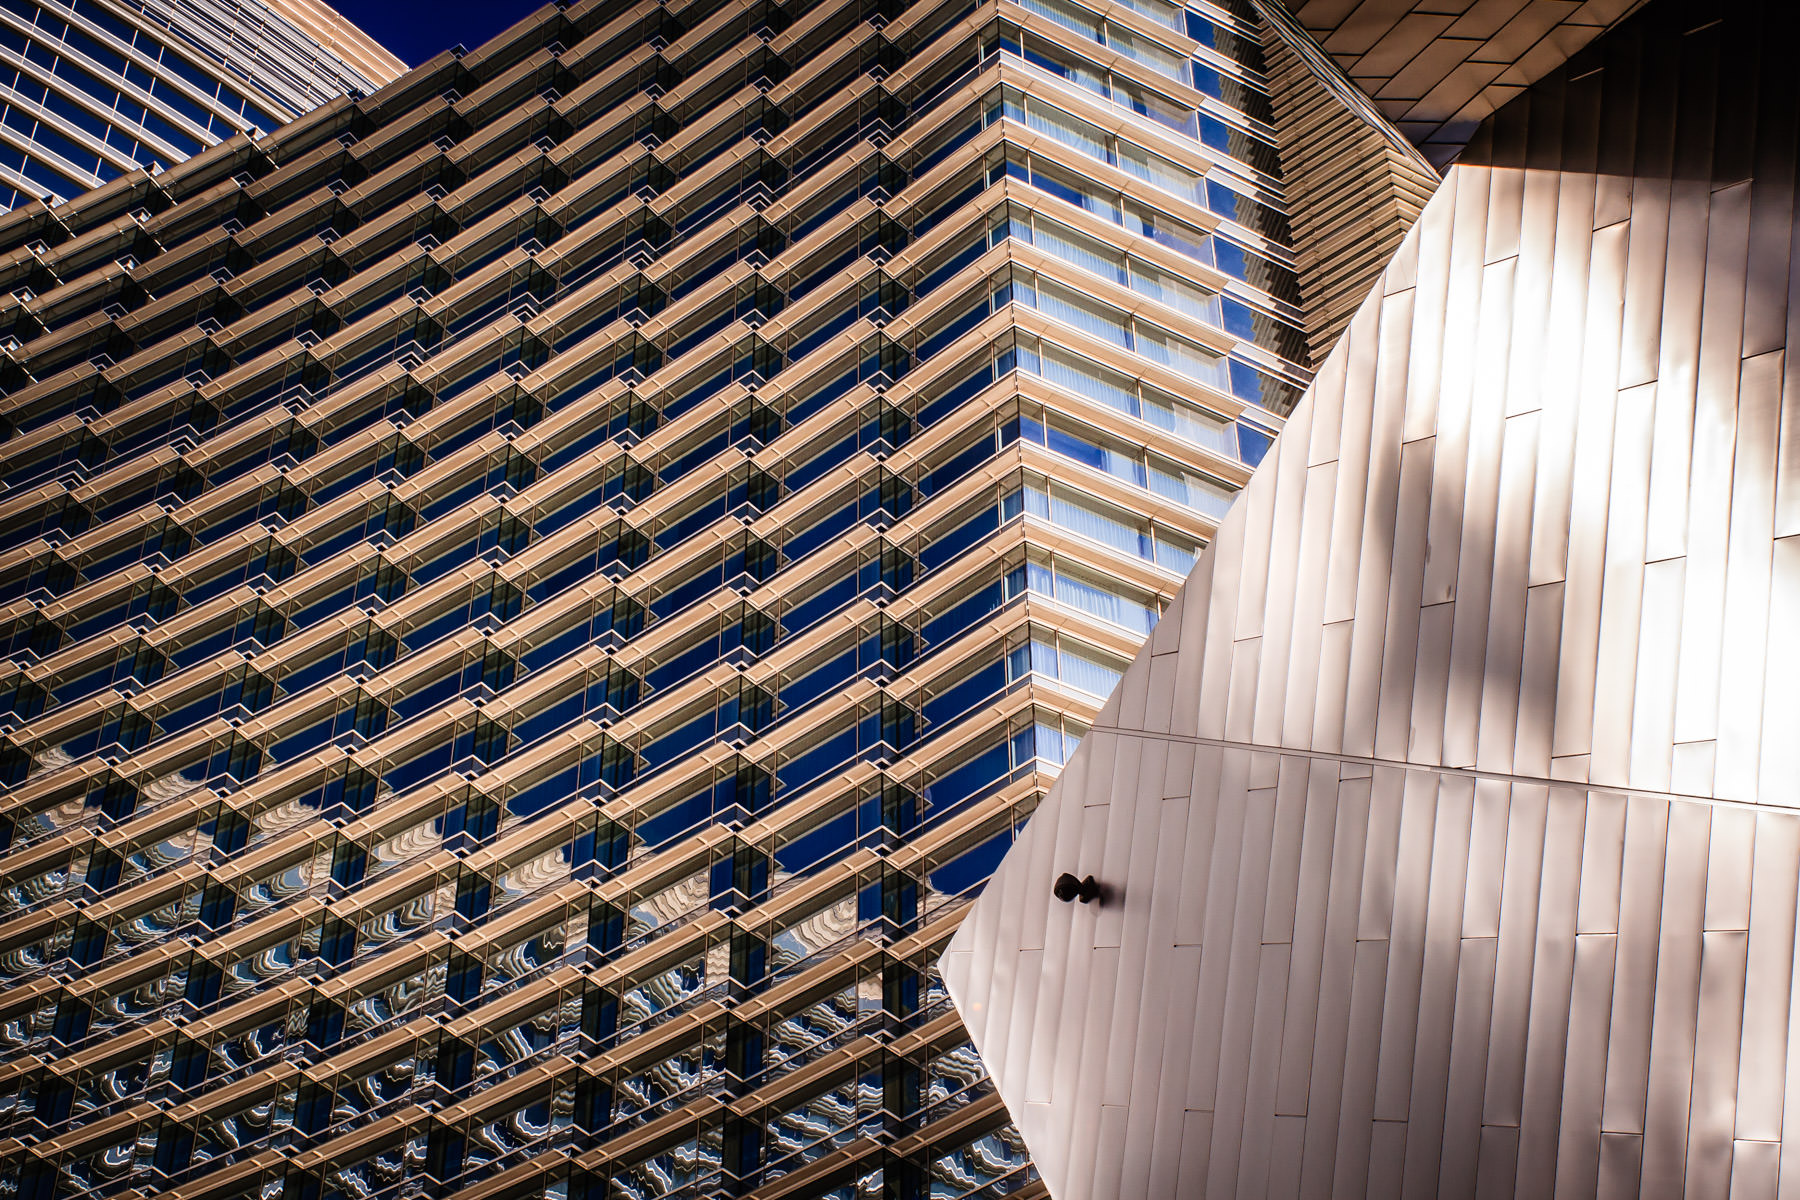 An abstraction of The Aria, CityCenter, Las Vegas.